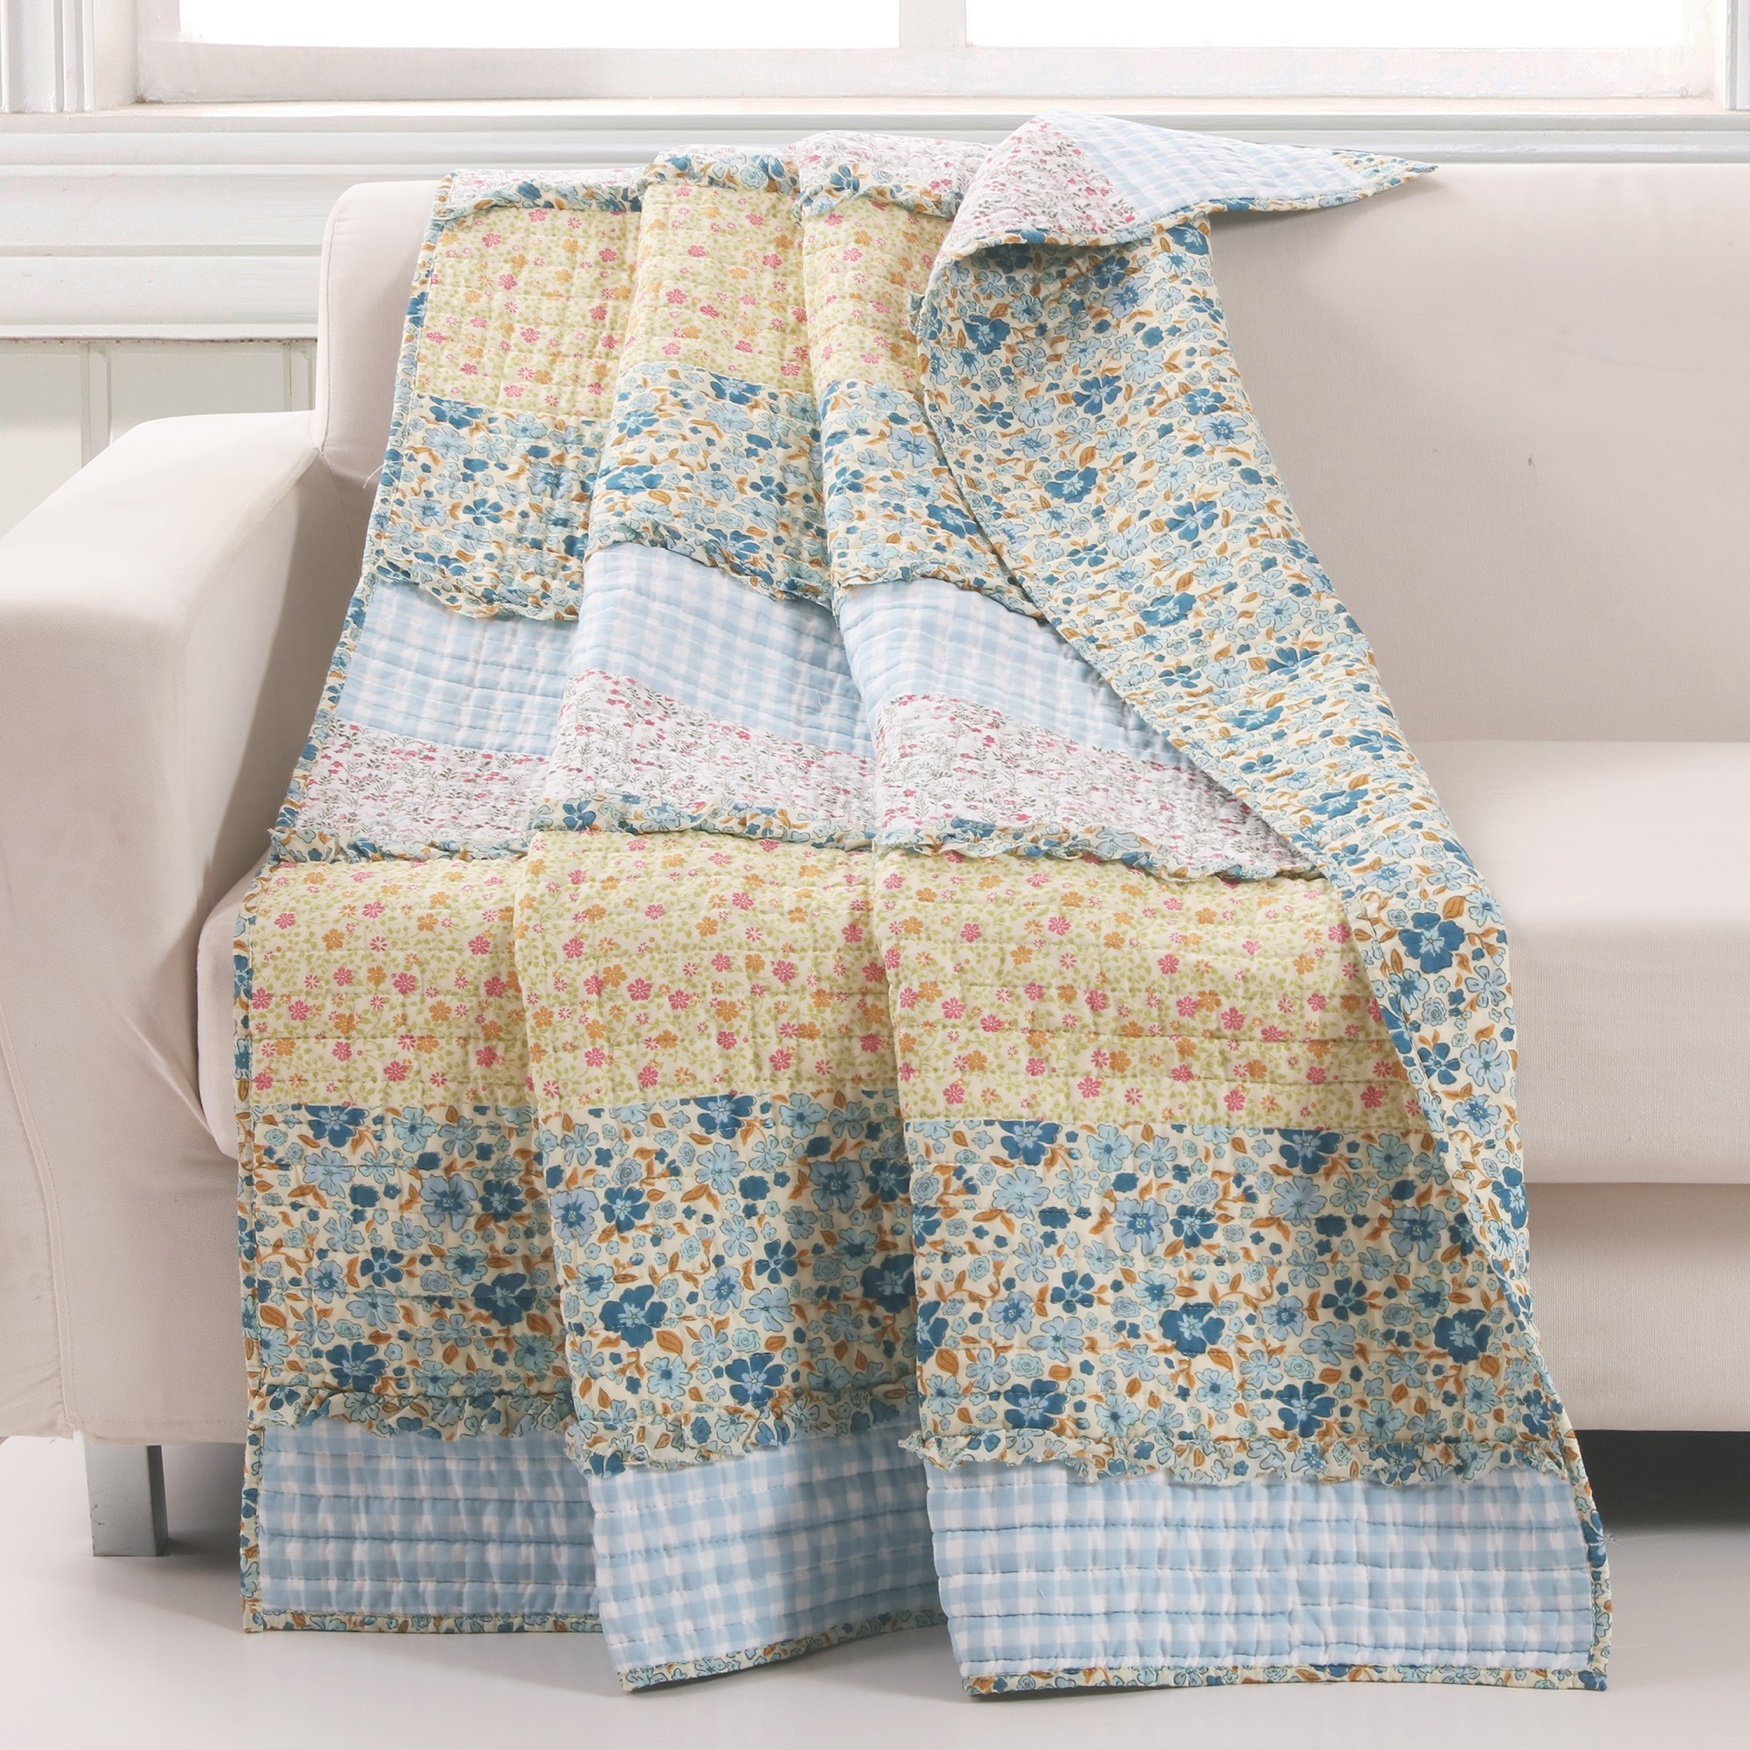 Ditsy Ruffle Quilted Throw Blanket, MULTI